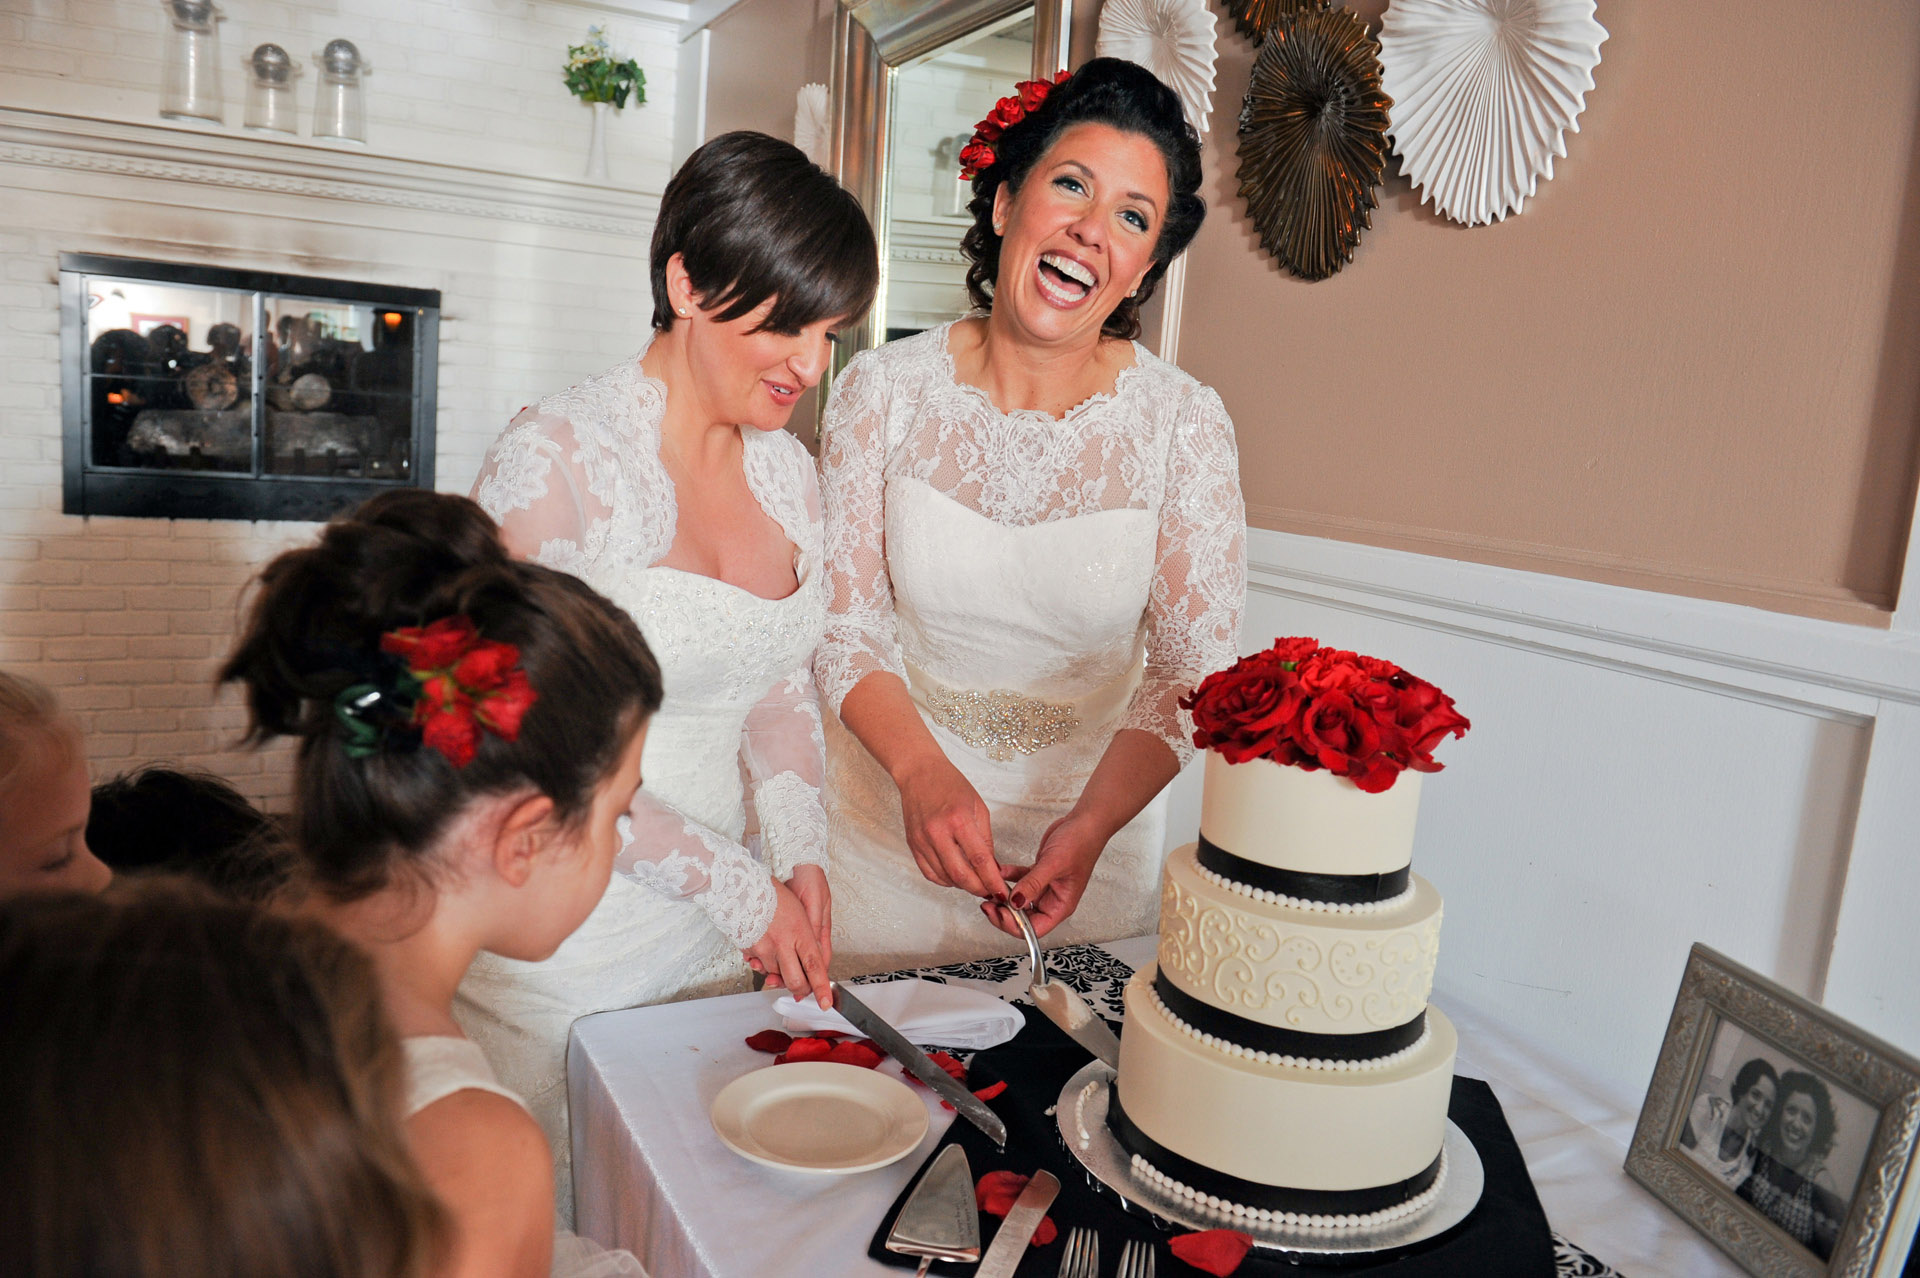 Michigan same sex wedding wedding photographer's photo of Jennifer and Emily cut the cake after their wedding ceremony at the Michigan same sex wedding in Livonia, Michigan.